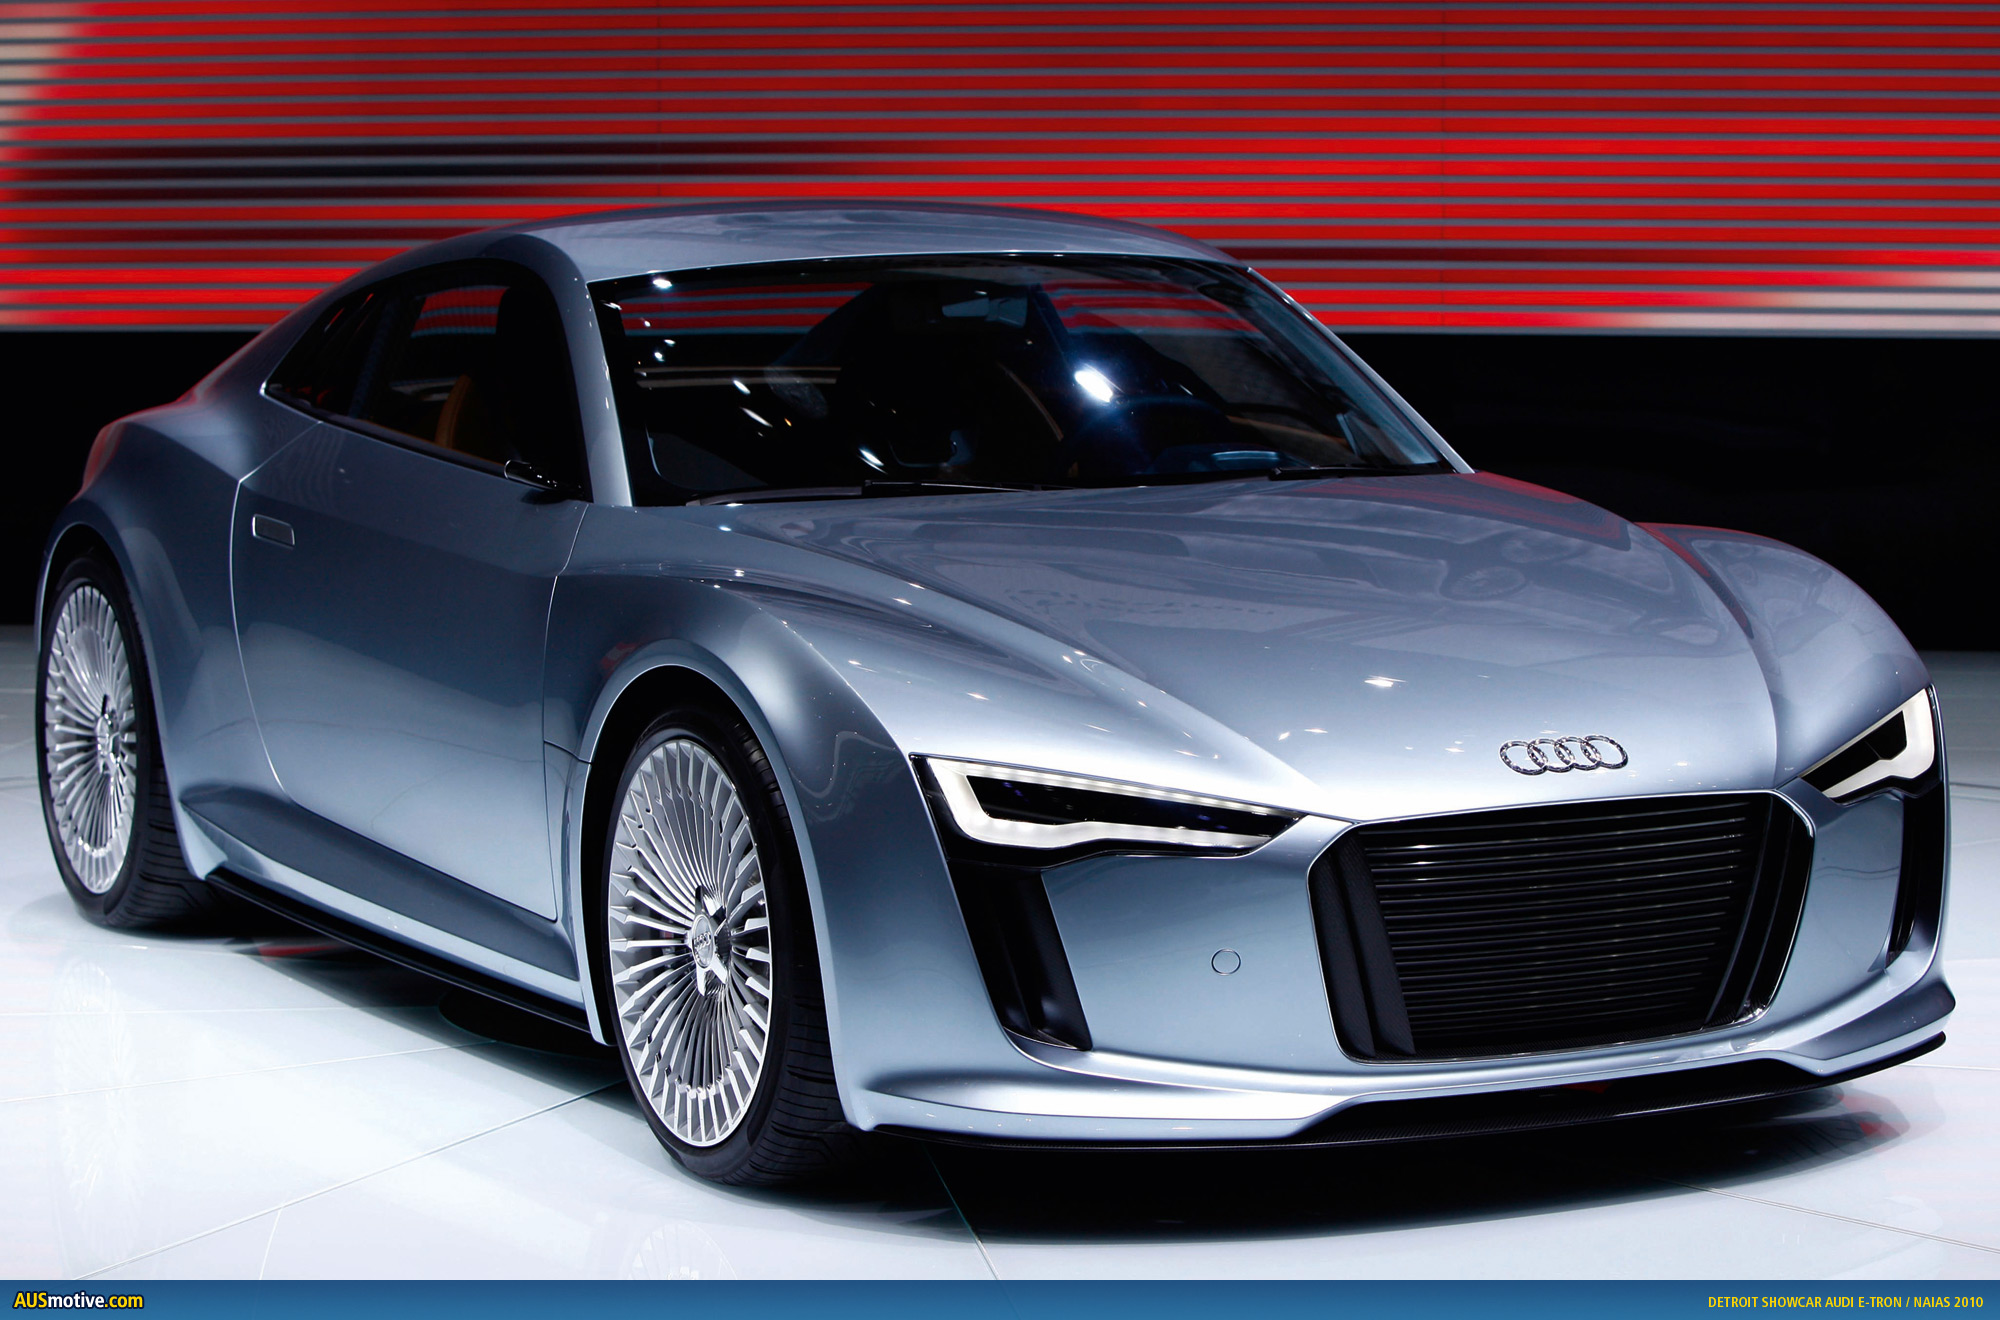 AUSmotive.com » Is the Audi R4 over B4 it begins?